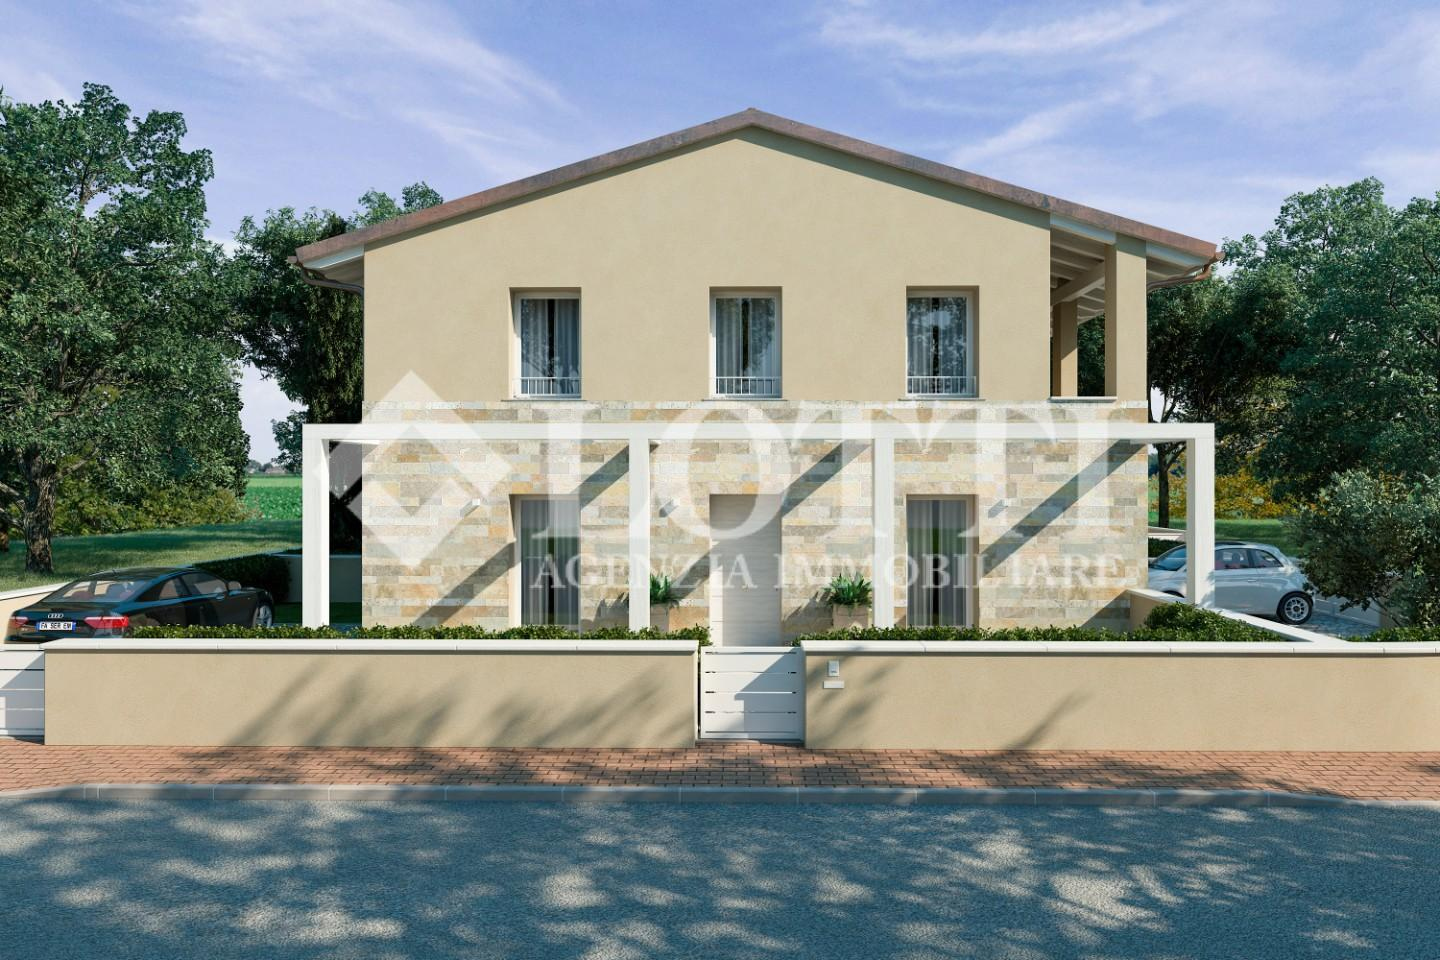 Apartment for sale, ref. 782